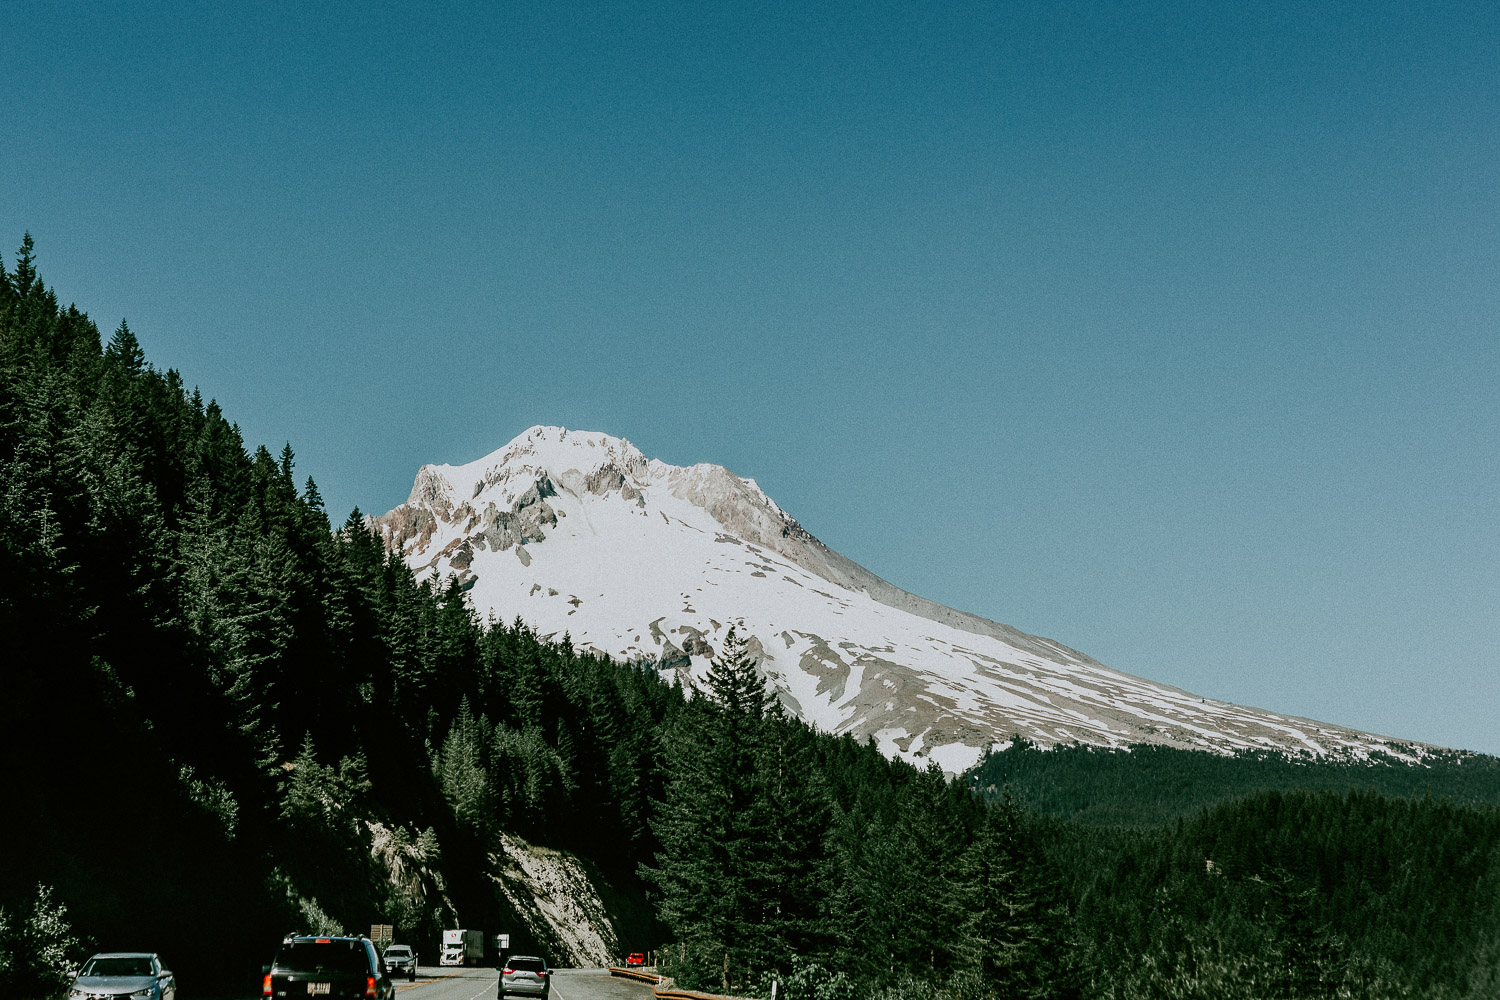 Image of Mt Hood in Portland